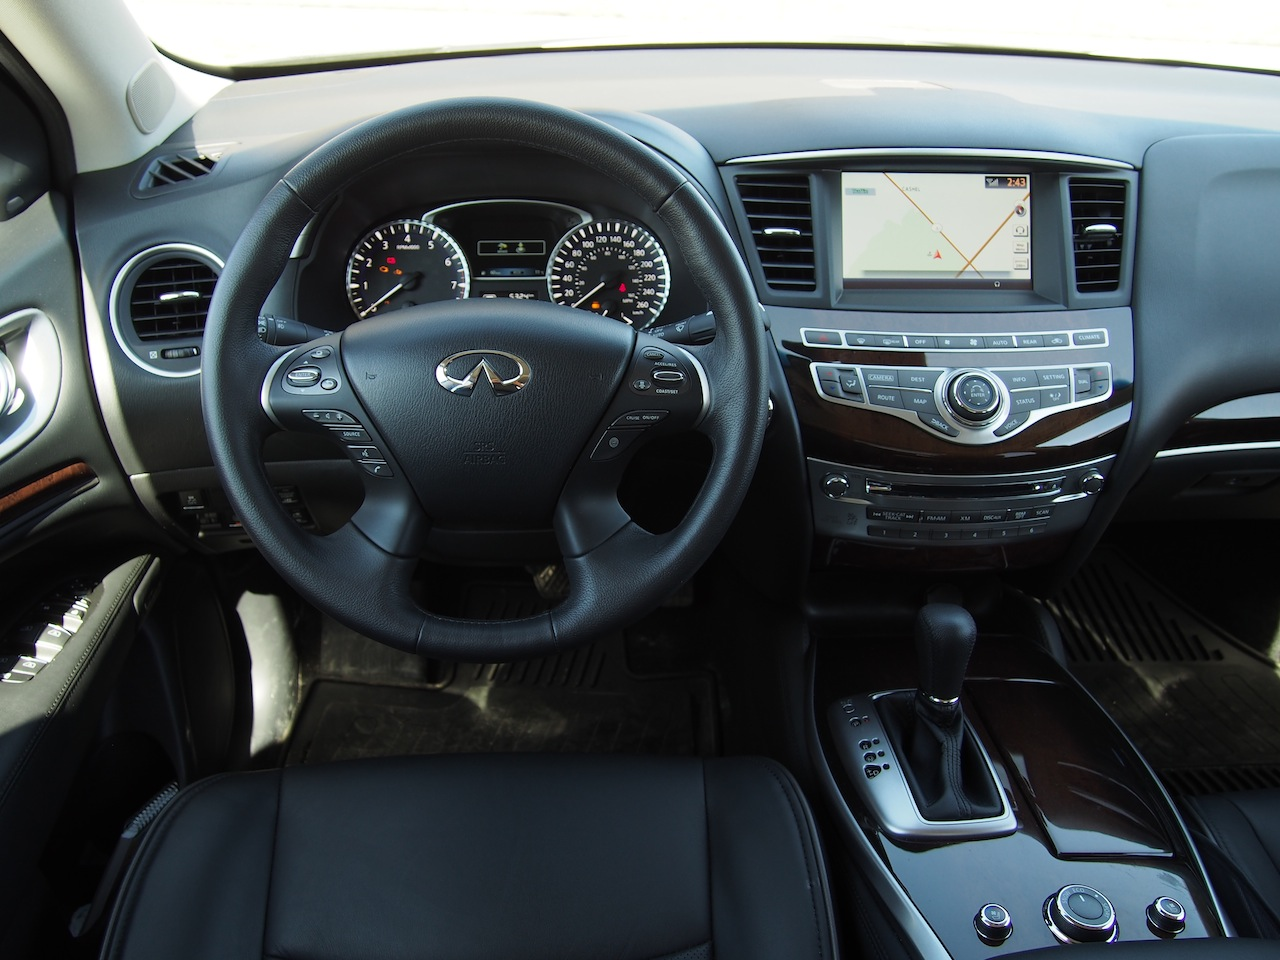 2014 Infiniti Qx60 Hybrid Review Cars Photos Test Drives And Reviews Canadian Auto Review